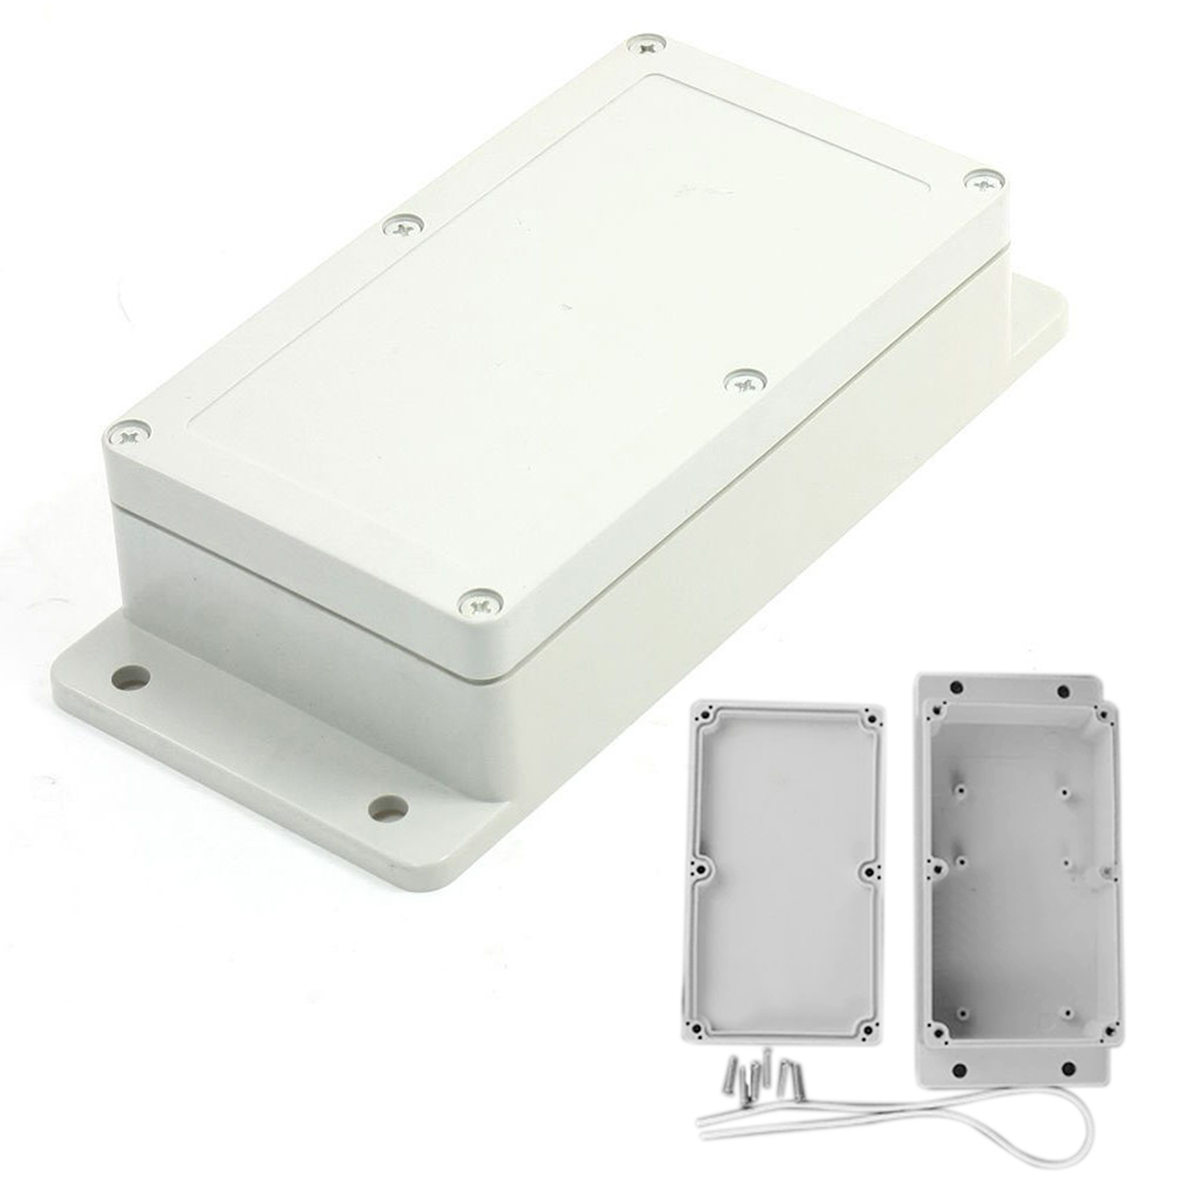 New White Waterproof Enclosure Junction Box Plastic Power Junction Box Electronic Project Enclosure Case 158x90x46mm